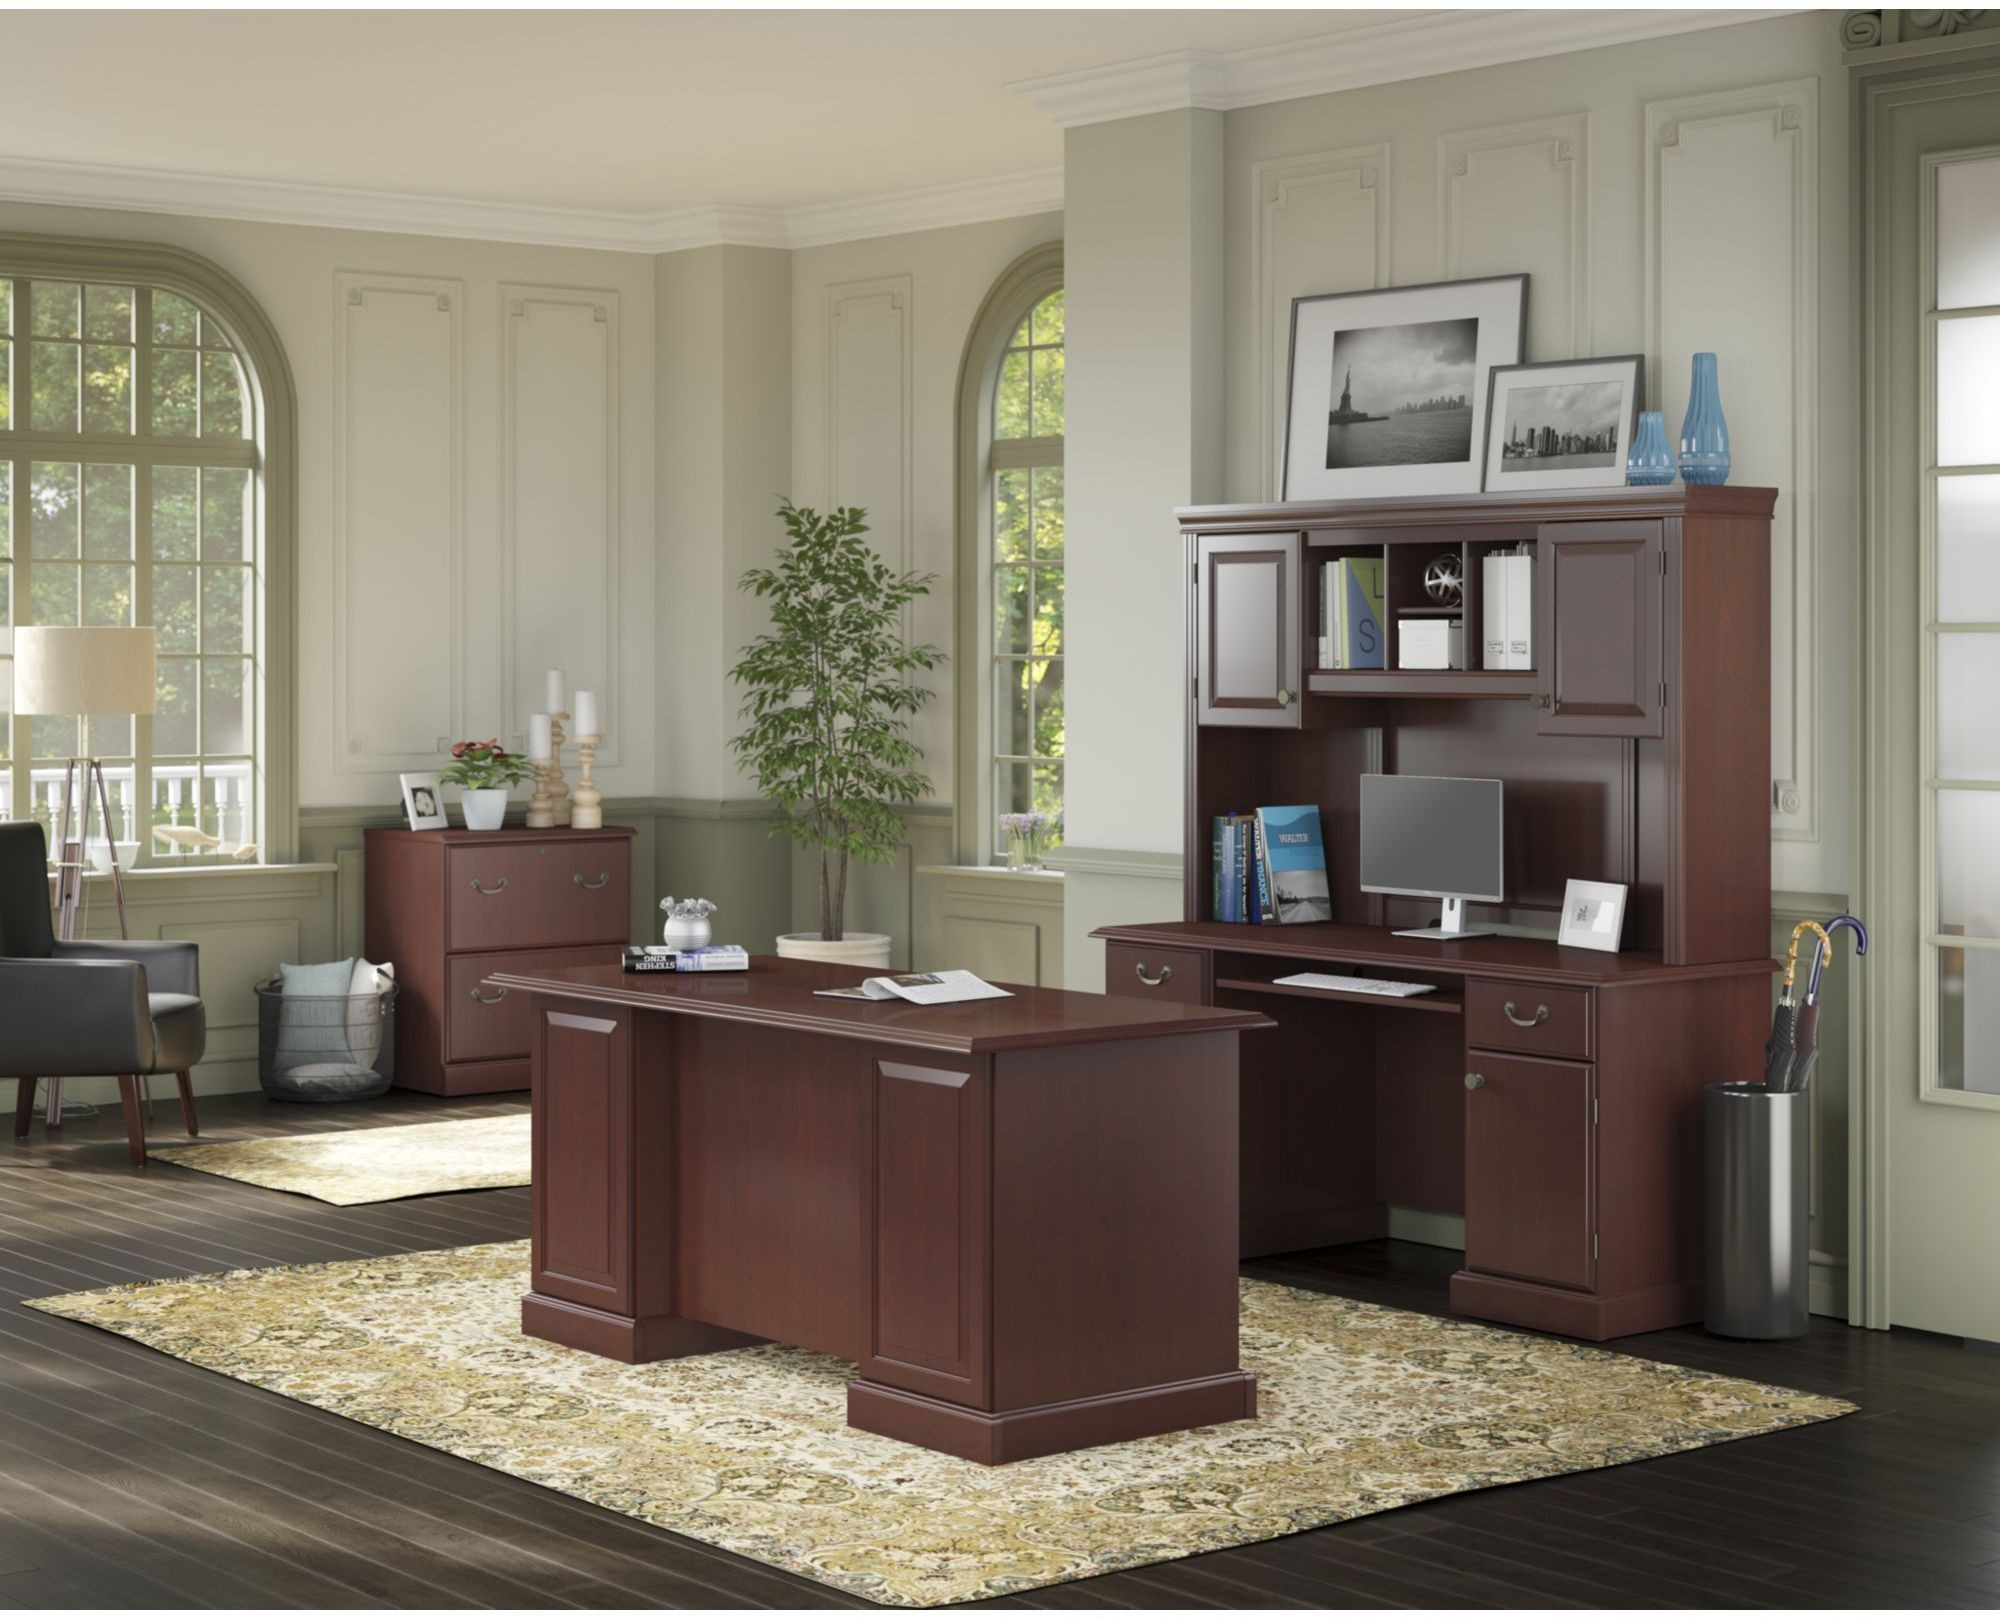 Bennington Harvest Cherry Home Office Set From Kathy Ireland By Bush |  Coleman Furniture